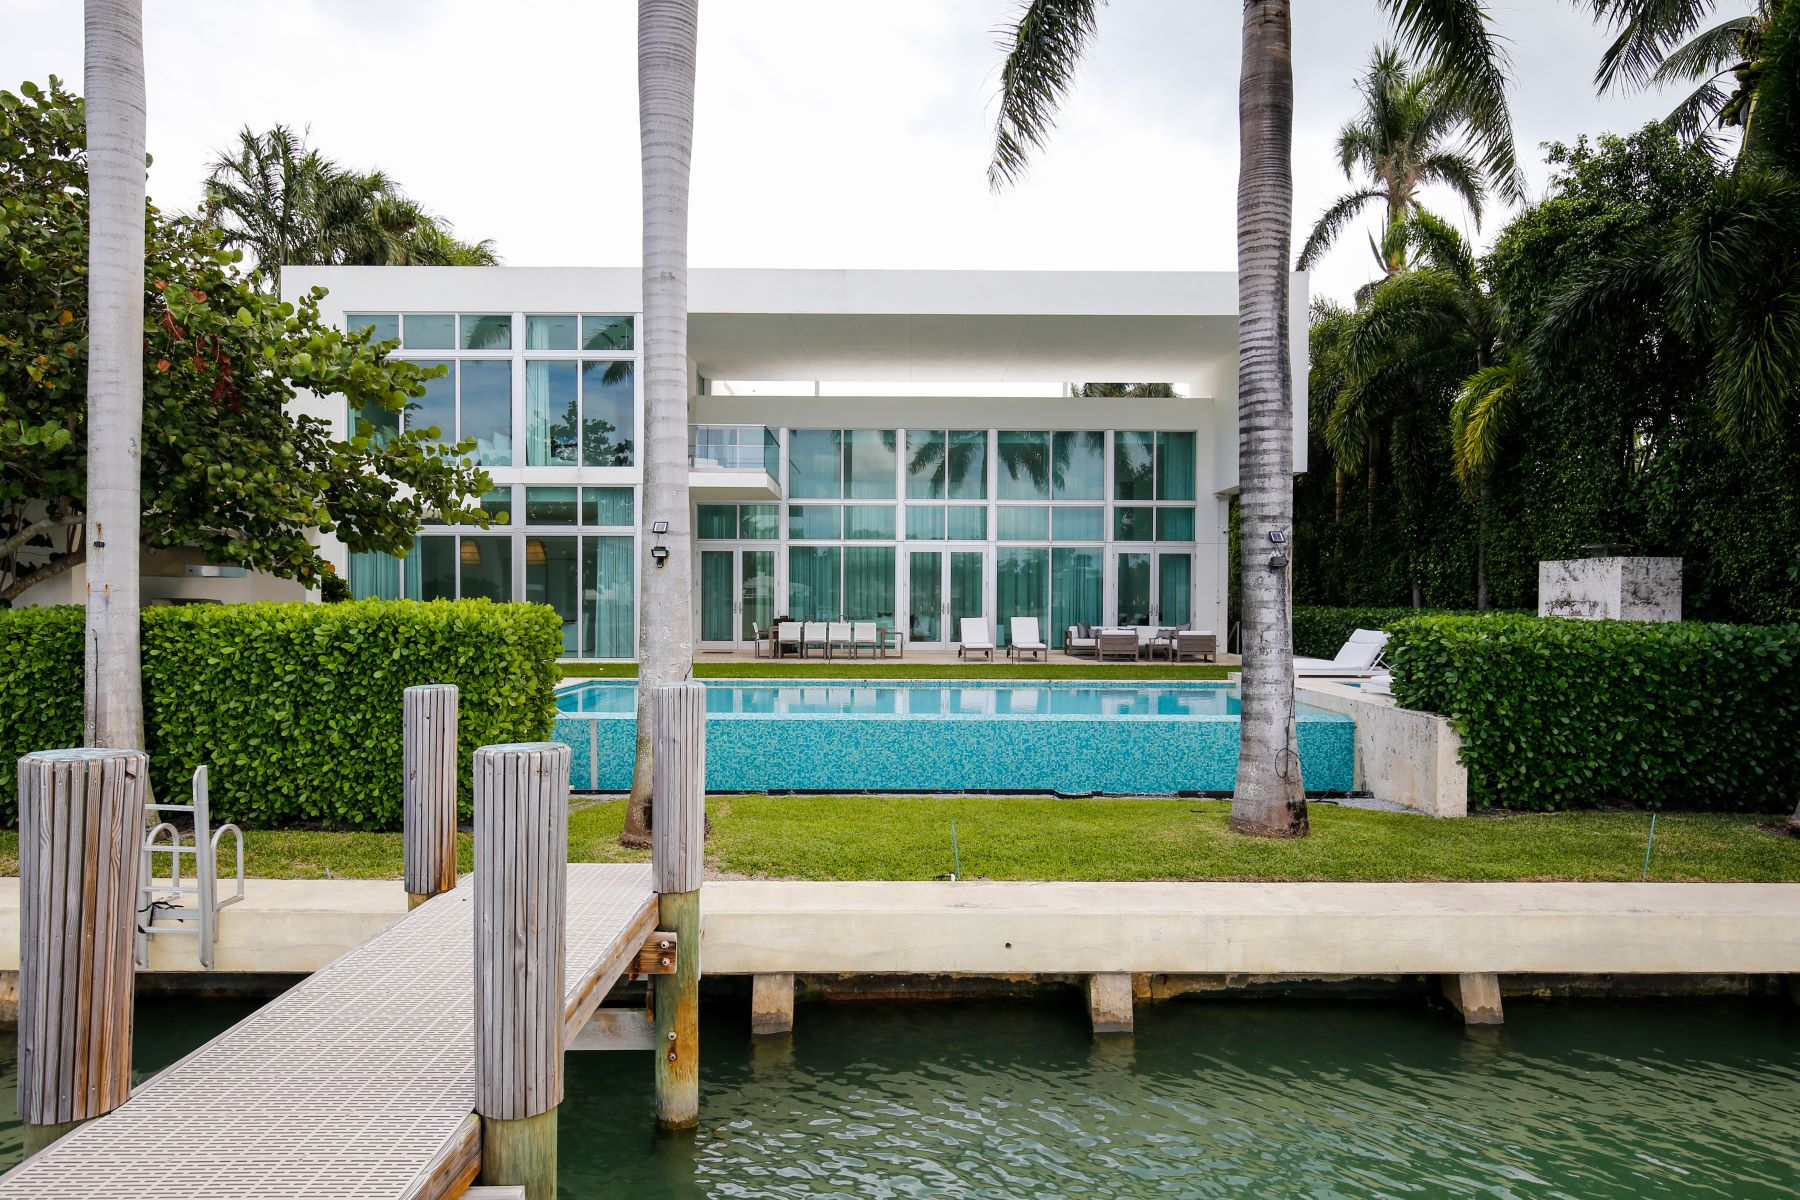 Single Family Home for Sale at 6396 N Bay Rd Miami Beach, Florida, 33141 United States